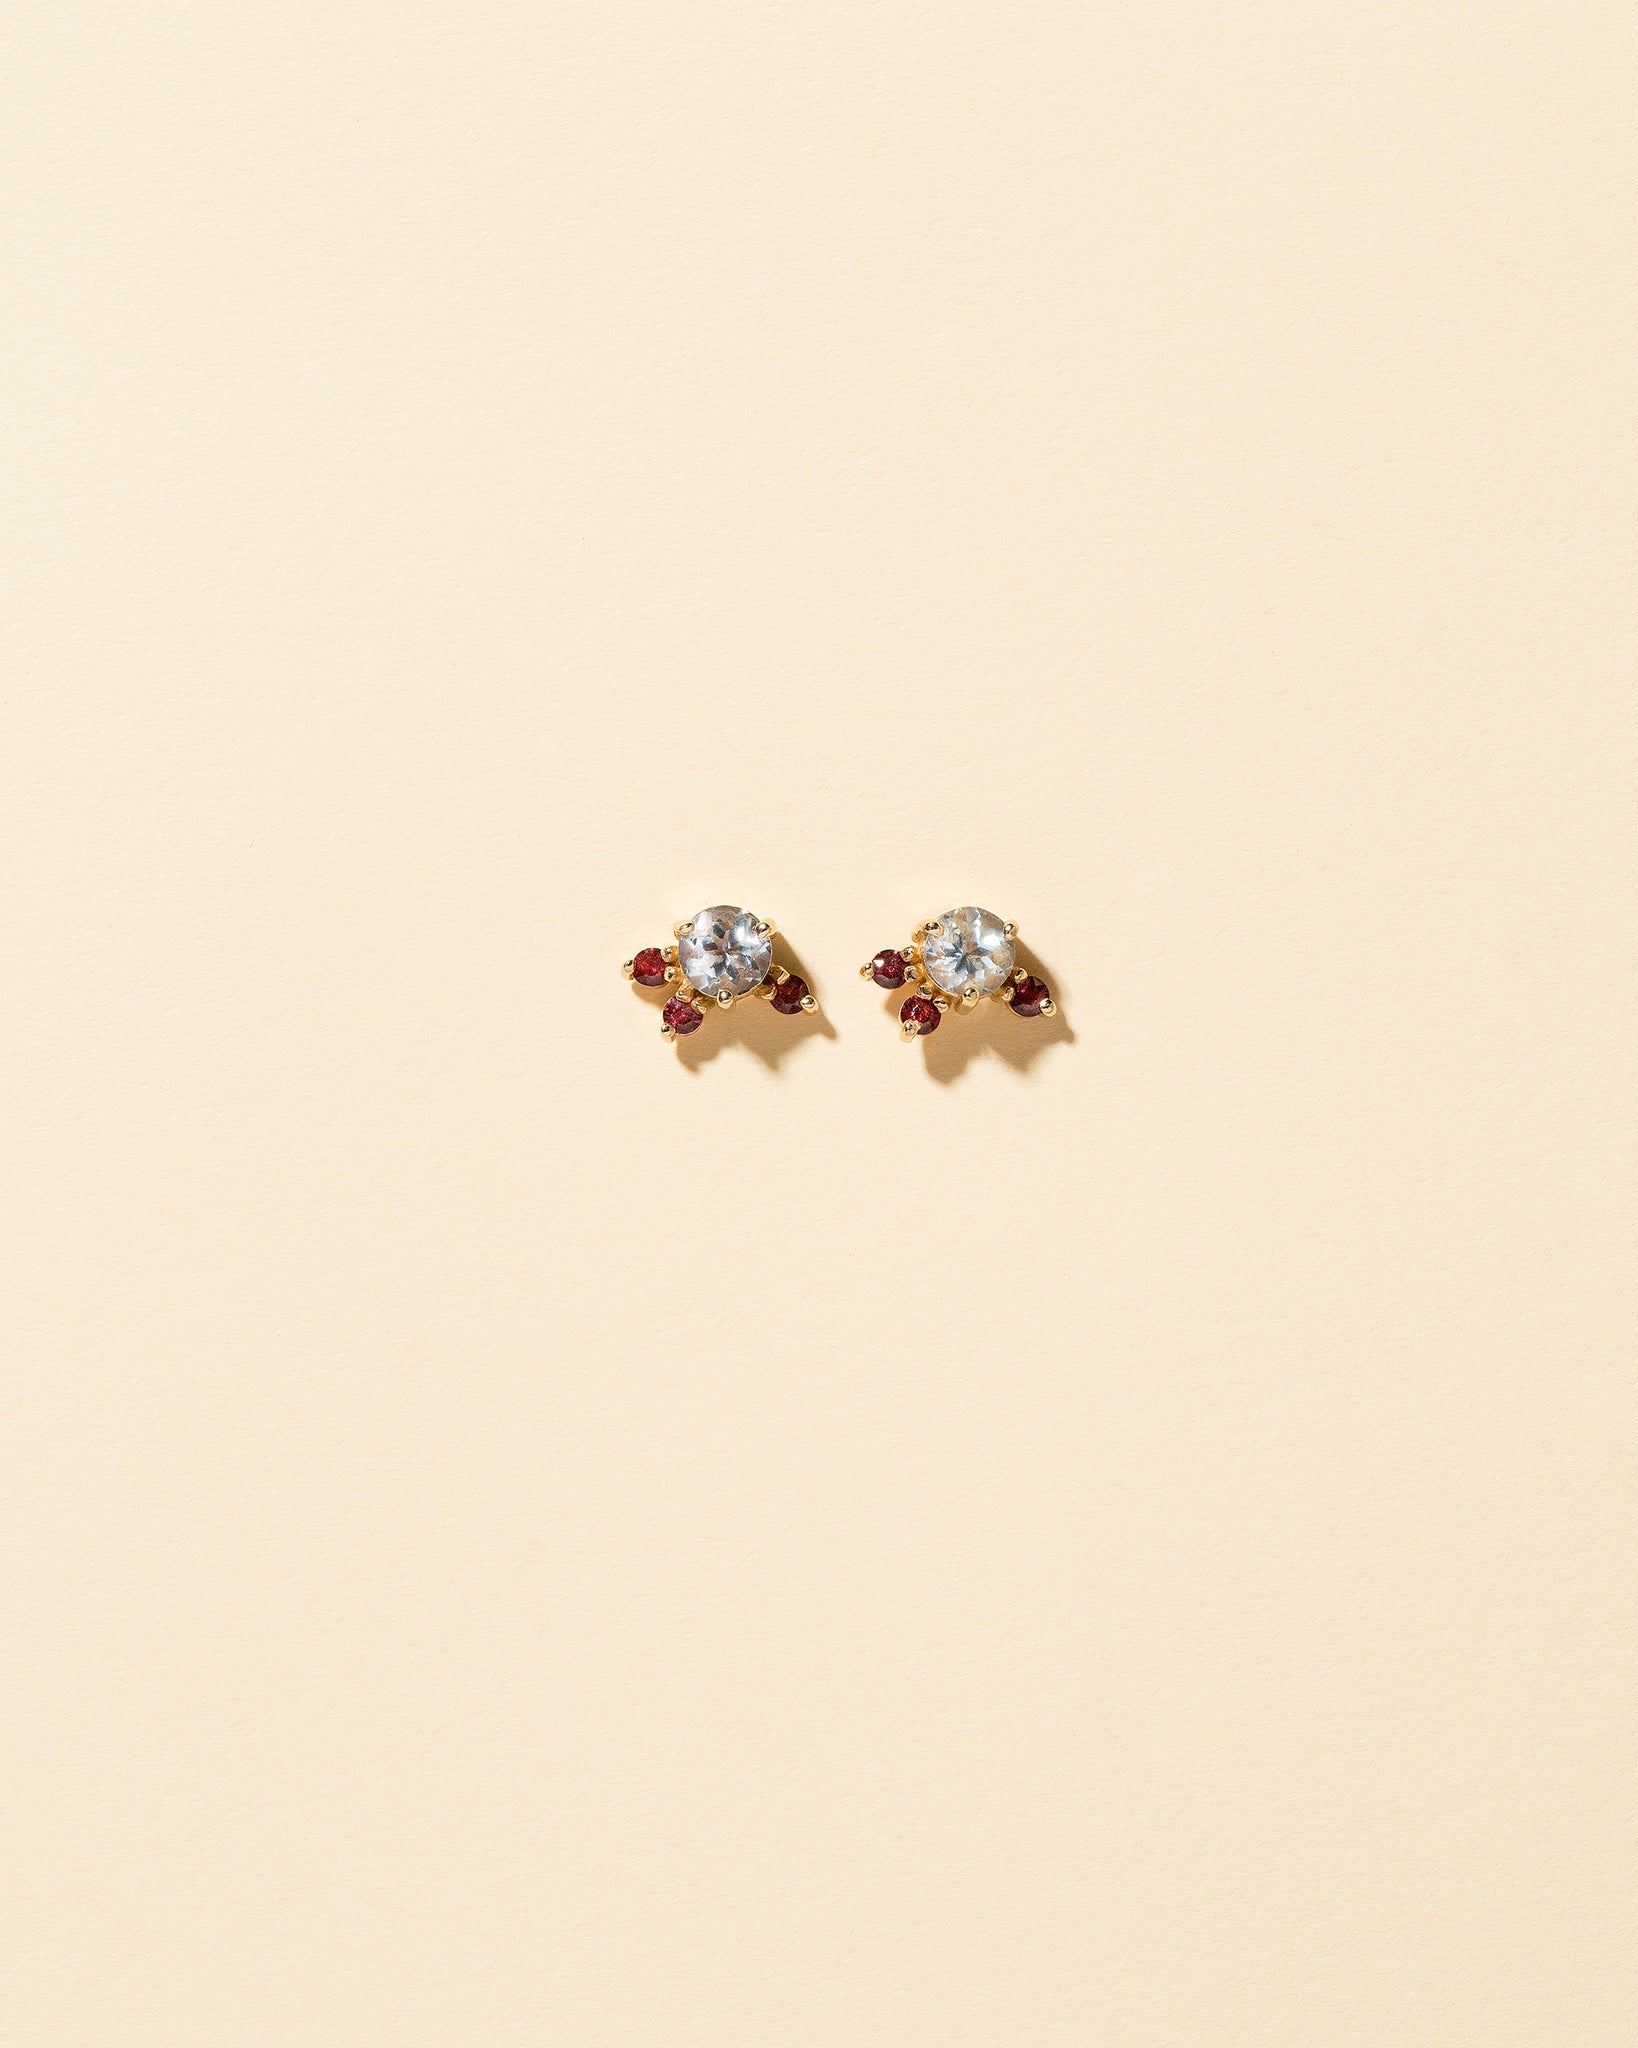 Aquamarine and Garnet Earrings